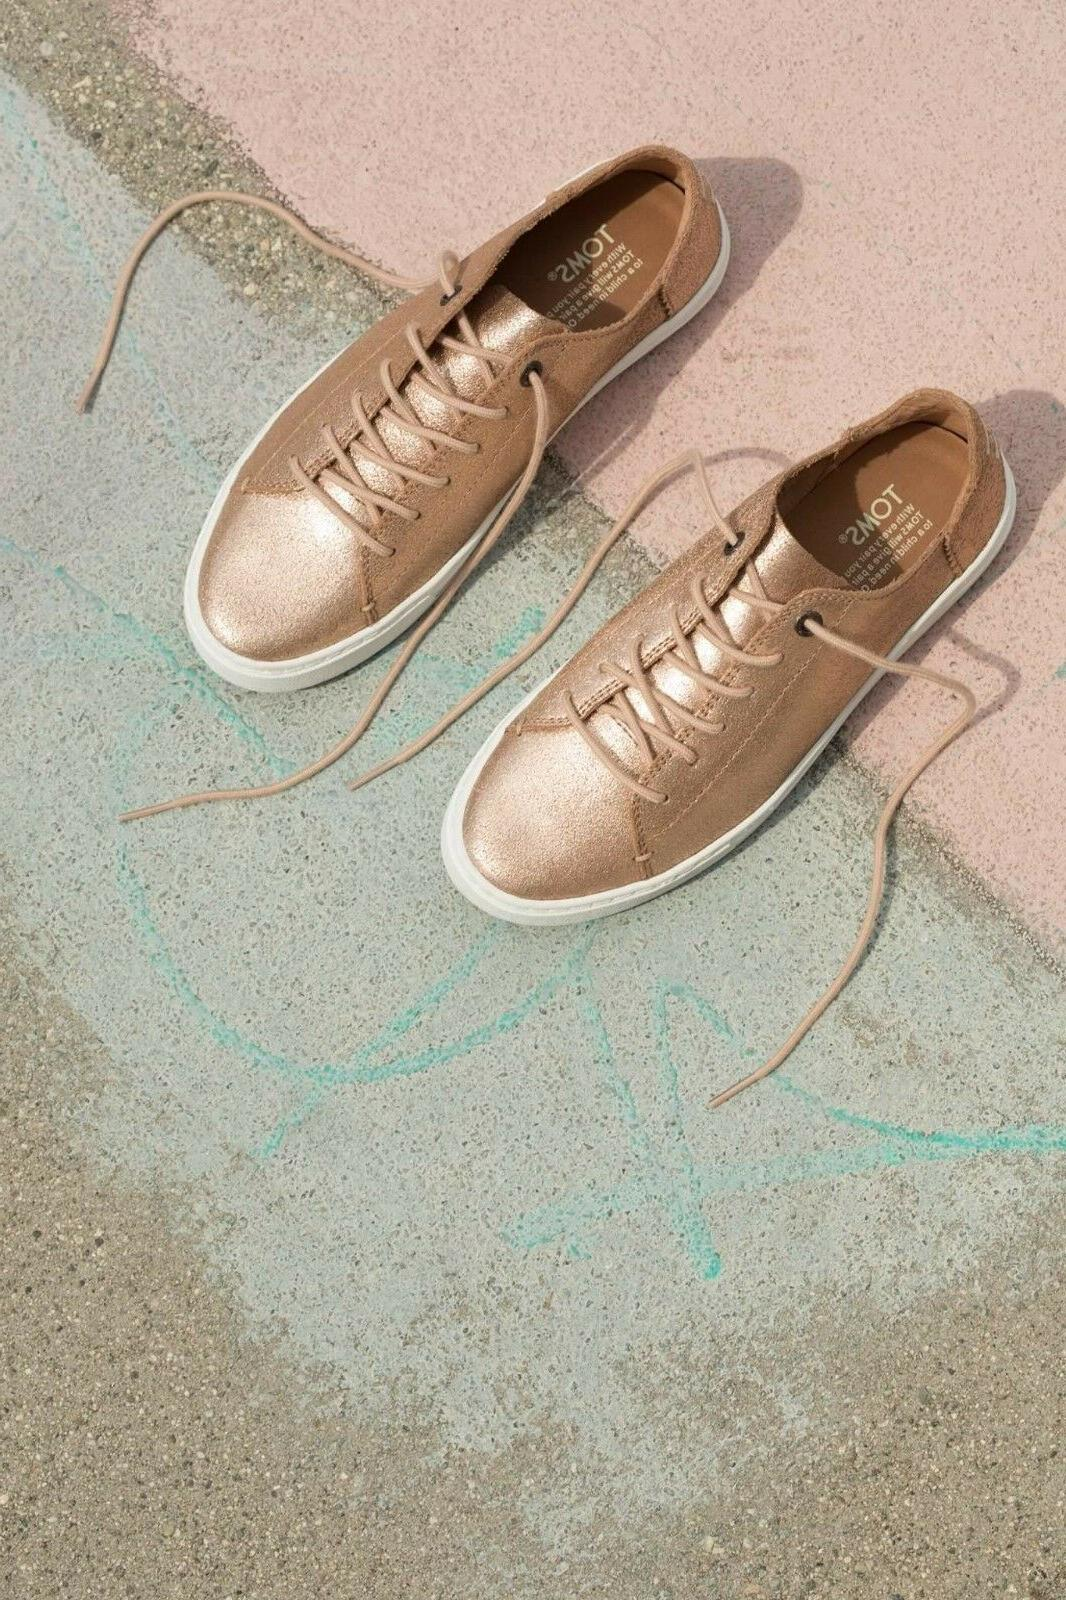 TOMS Rose Gold Metallic Leather Lenox Sneakers Shoes. Style: